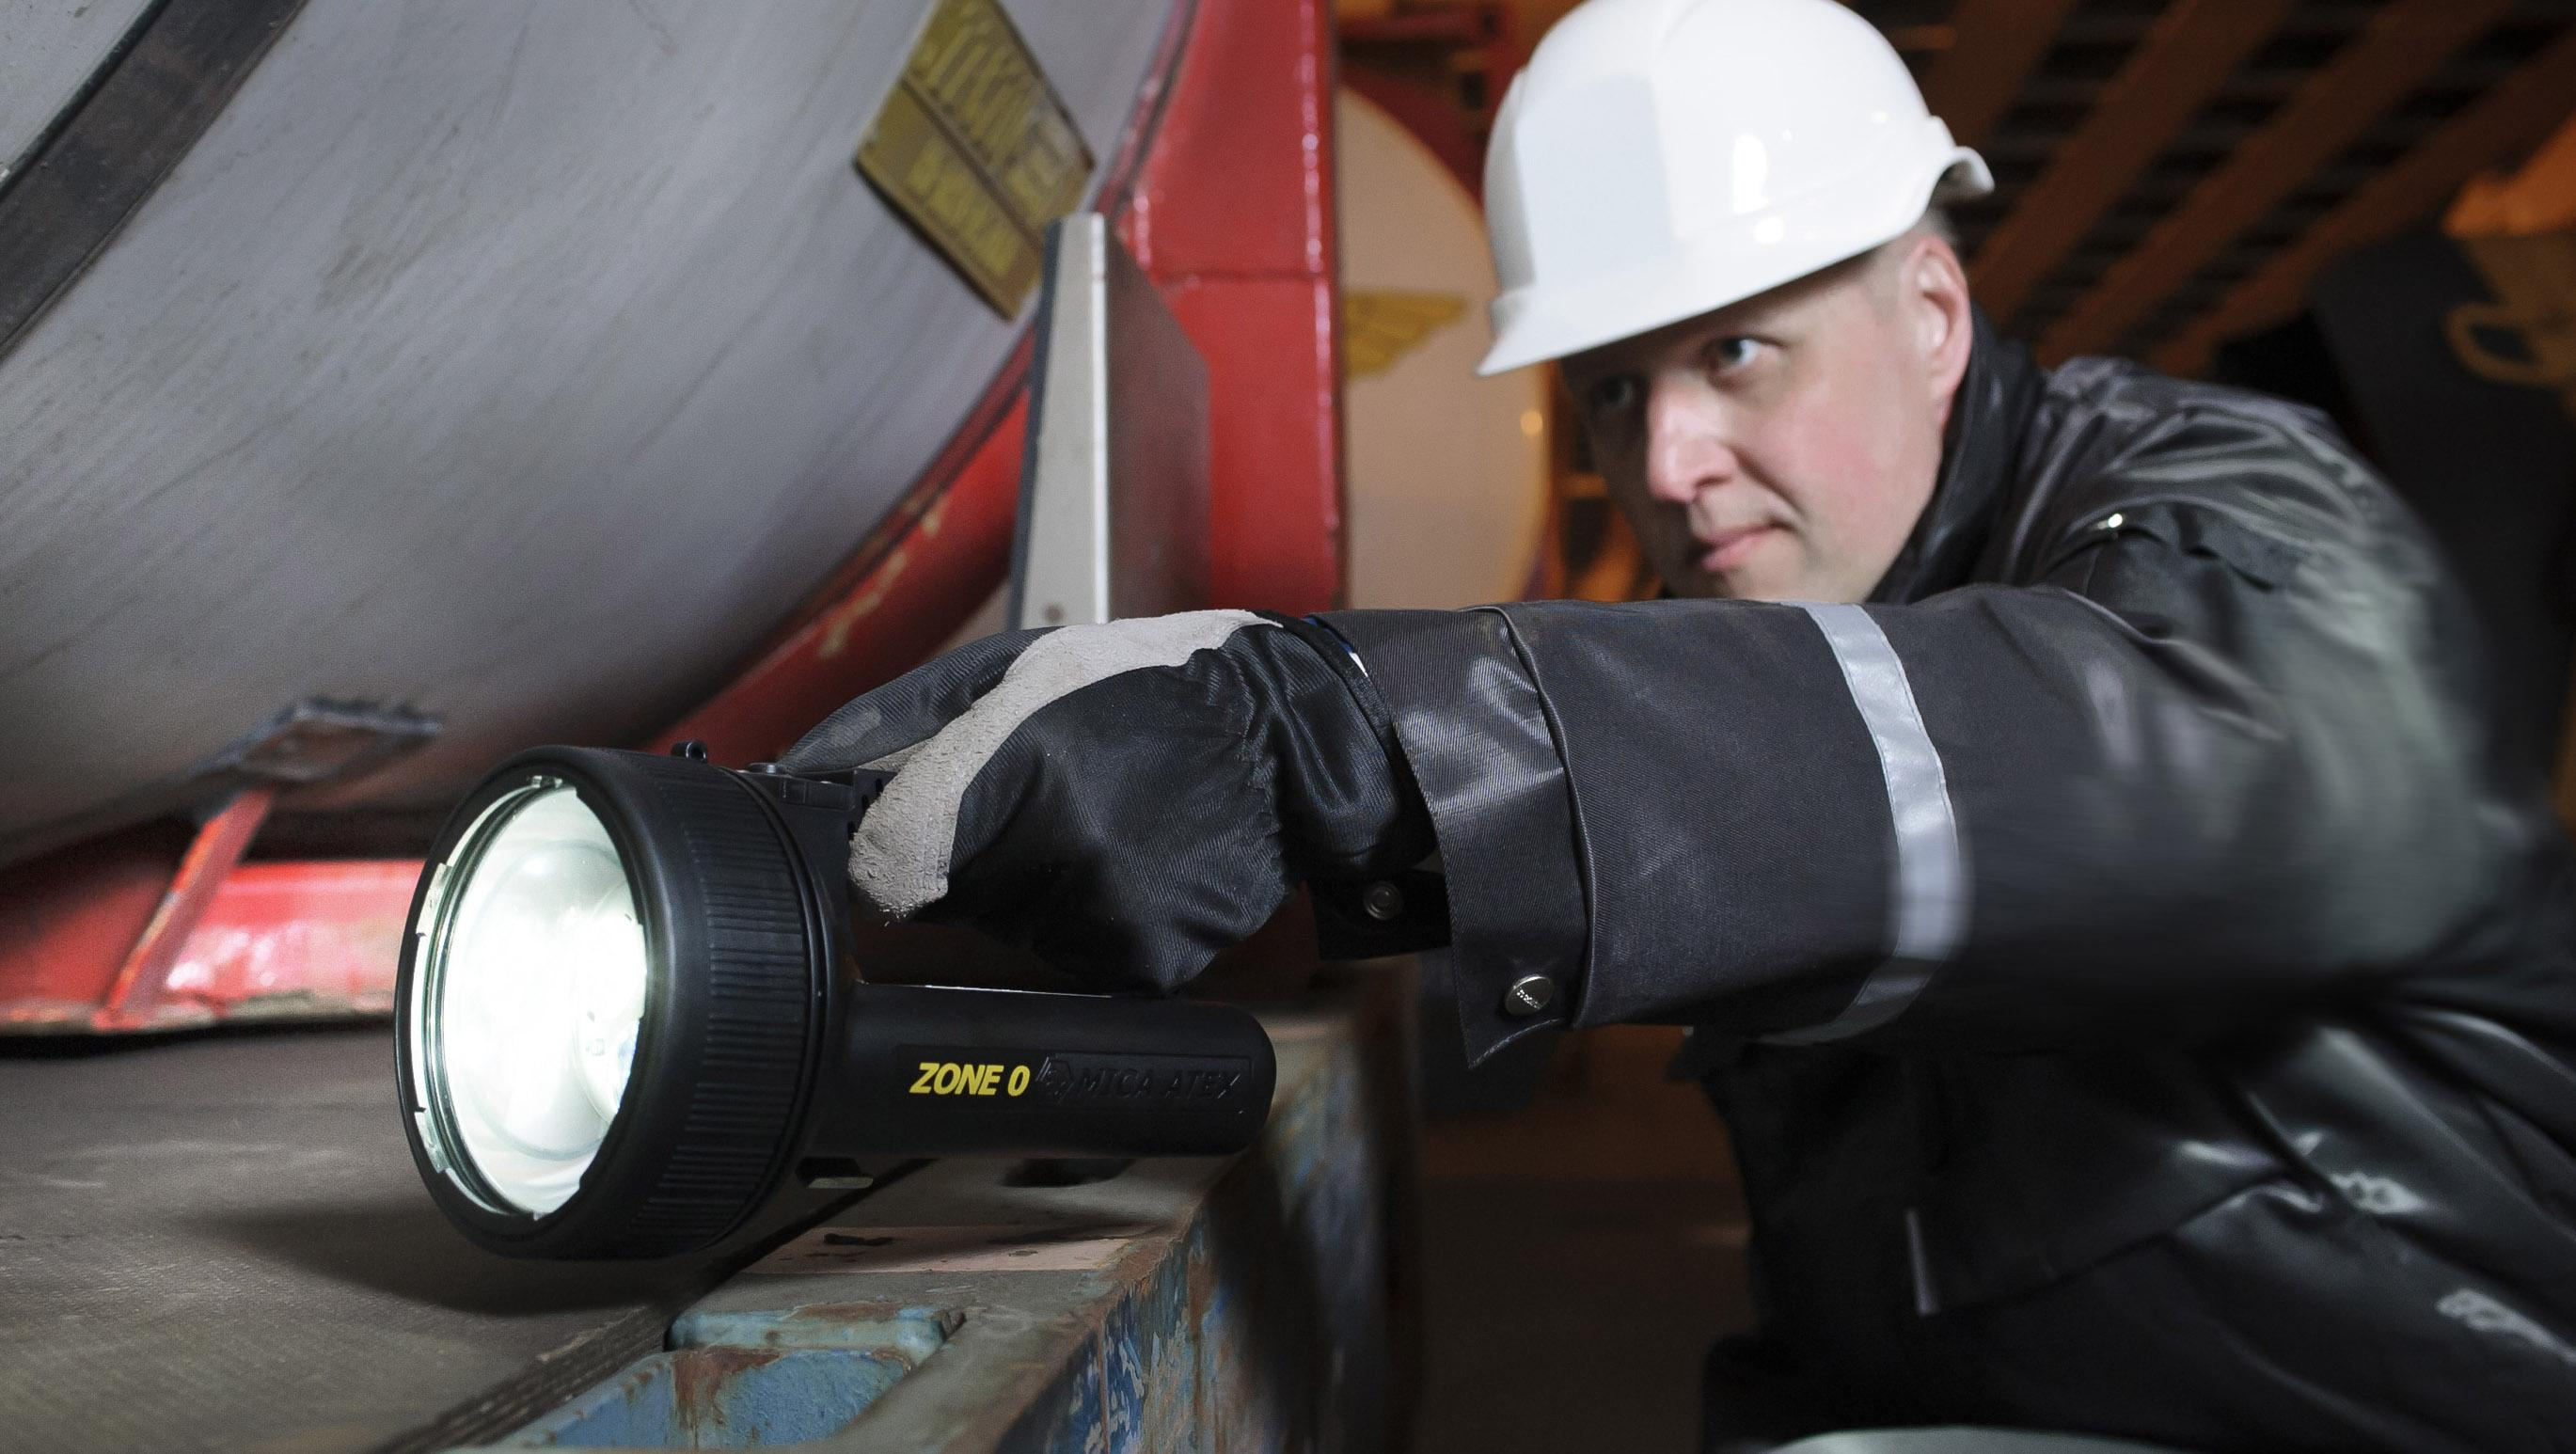 Zone 0 certified MICA IL-800 ATEX hand lamp used with fuel tank check.